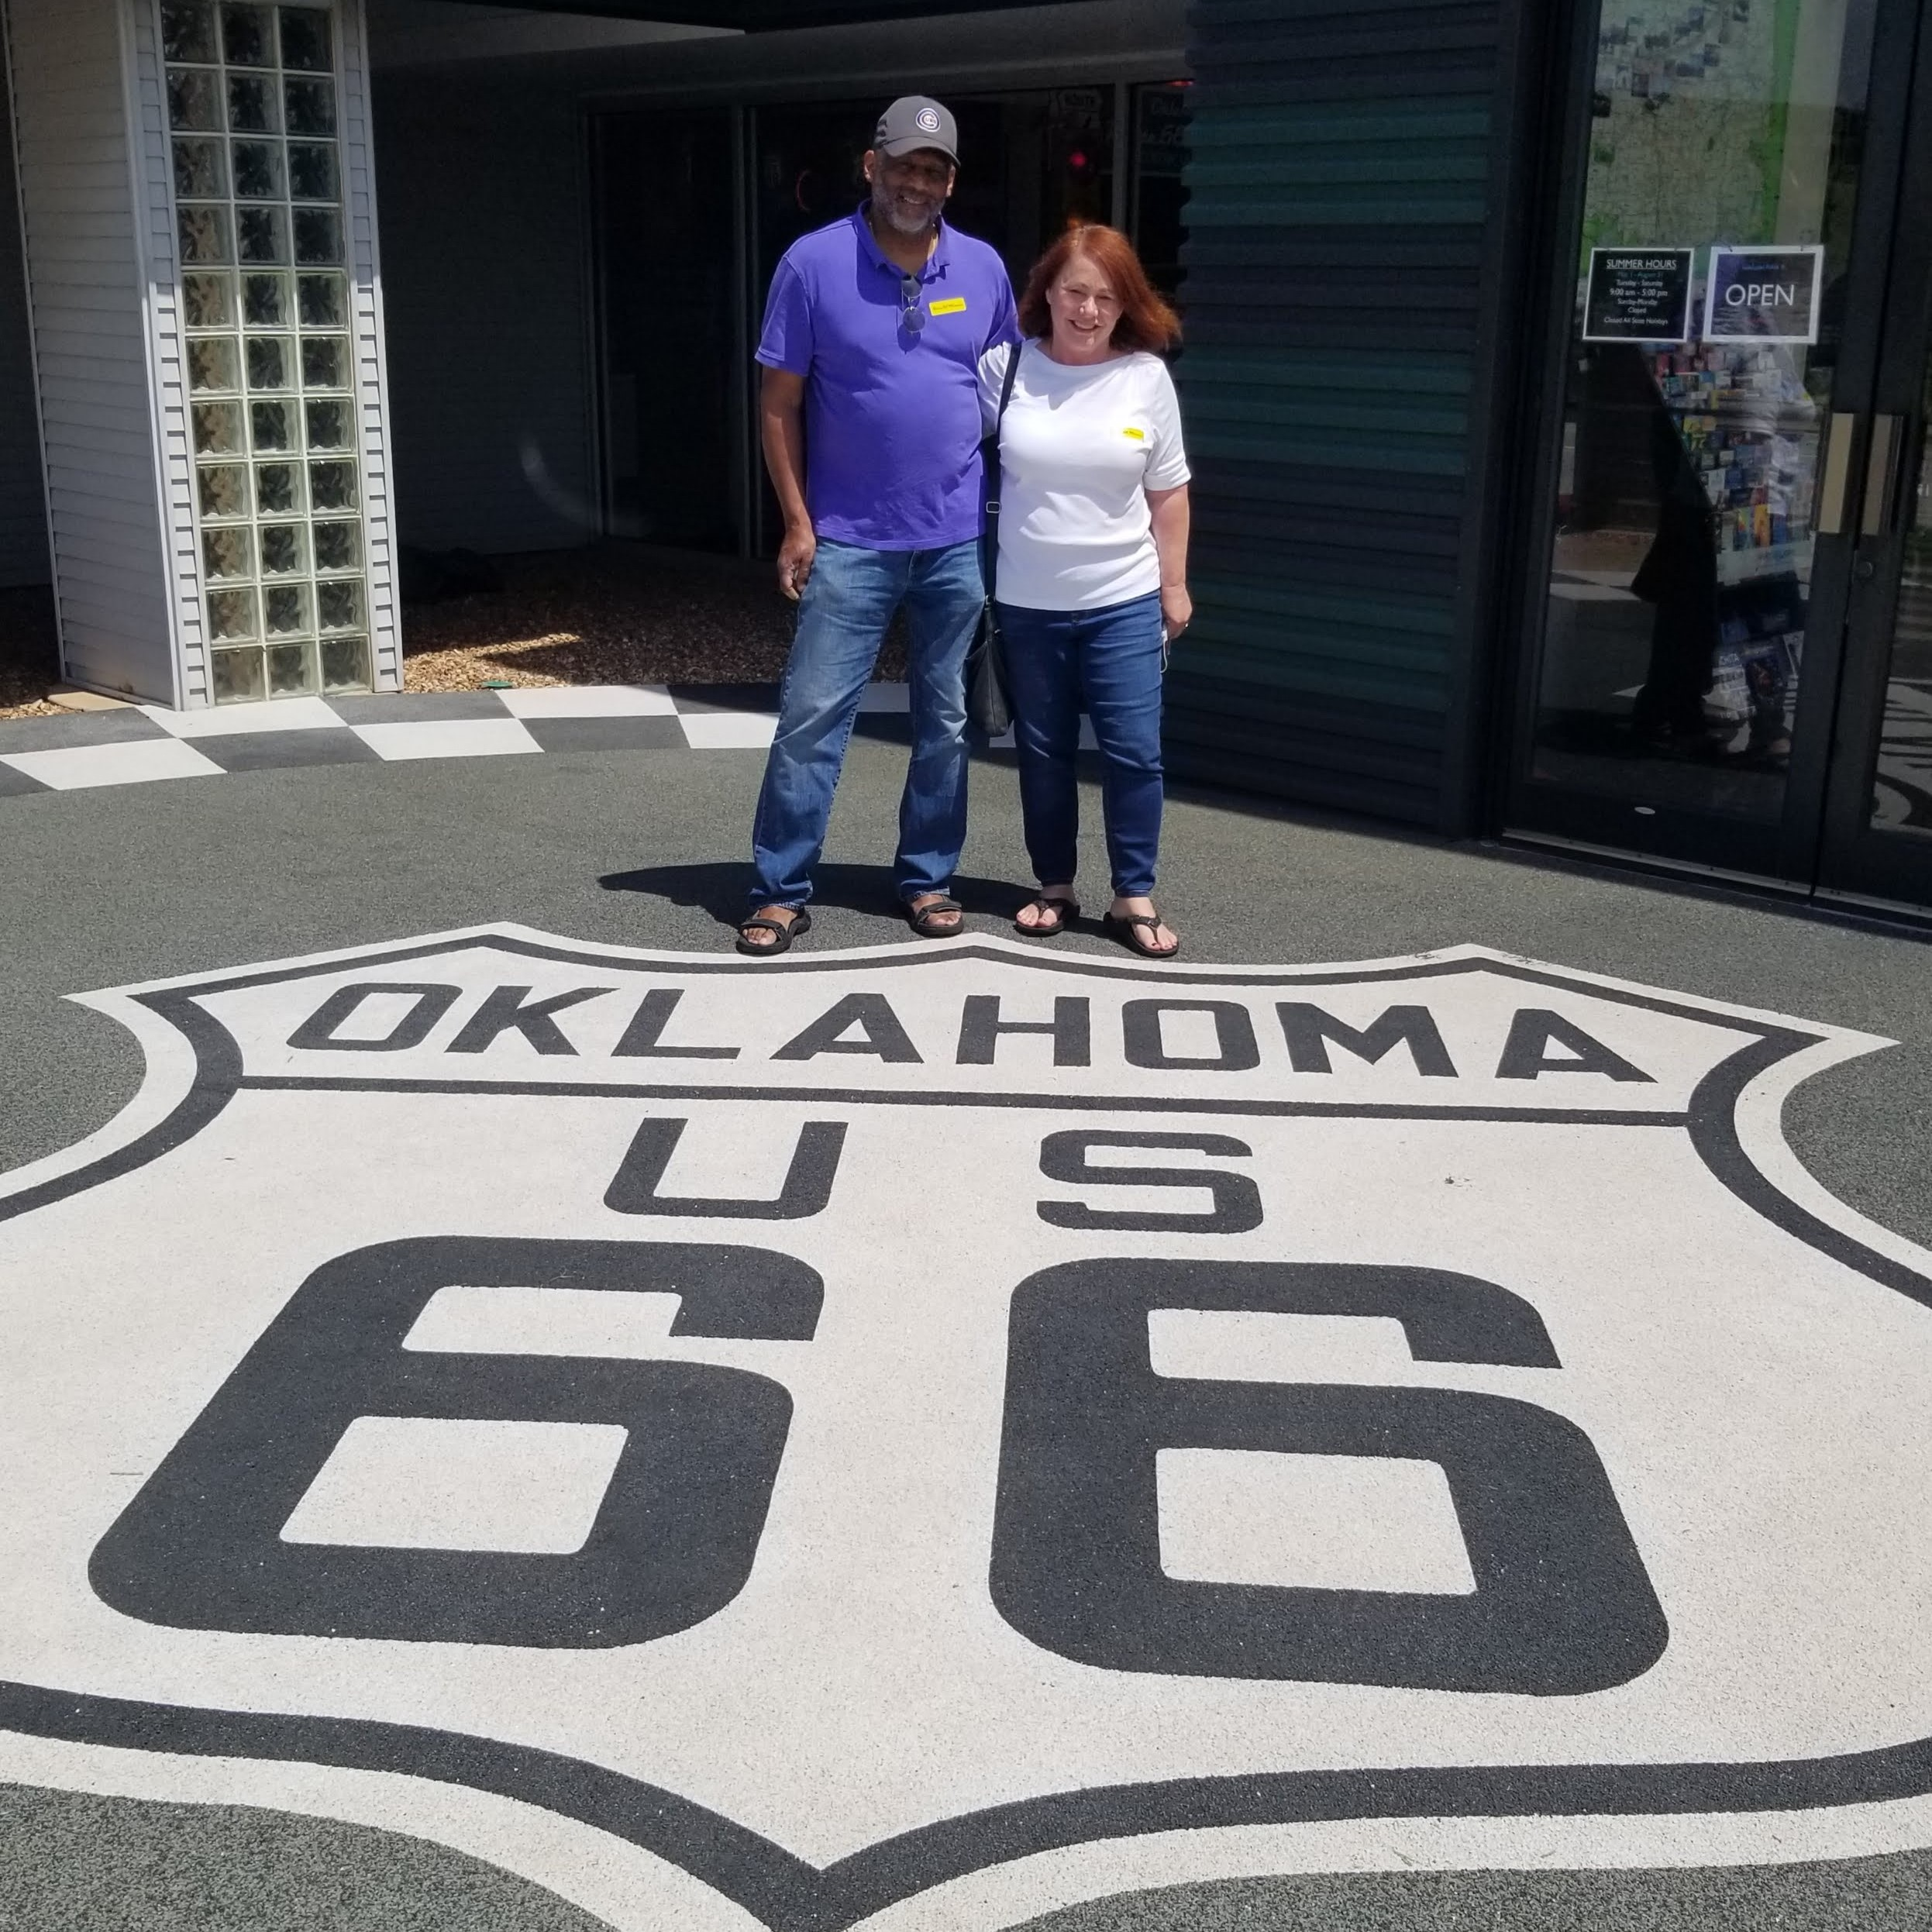 2020 Road Trip – I40 (Route 66)